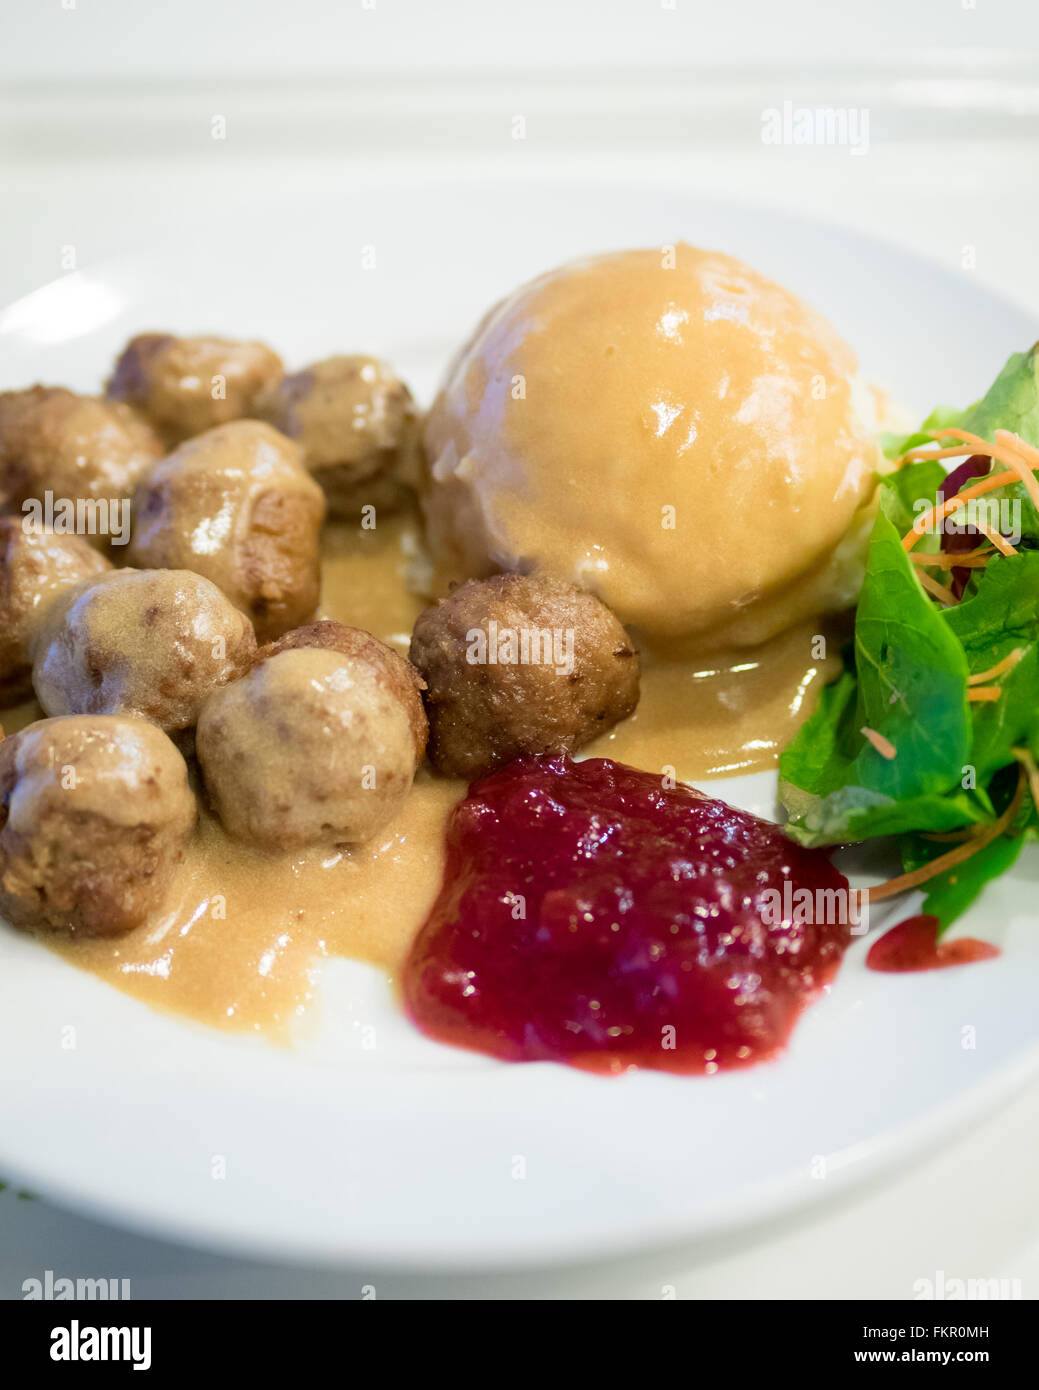 A plate of IKEA meatballs, mashed potatoes, cream gravy, green salad and lingonberry sauce. - Stock Image